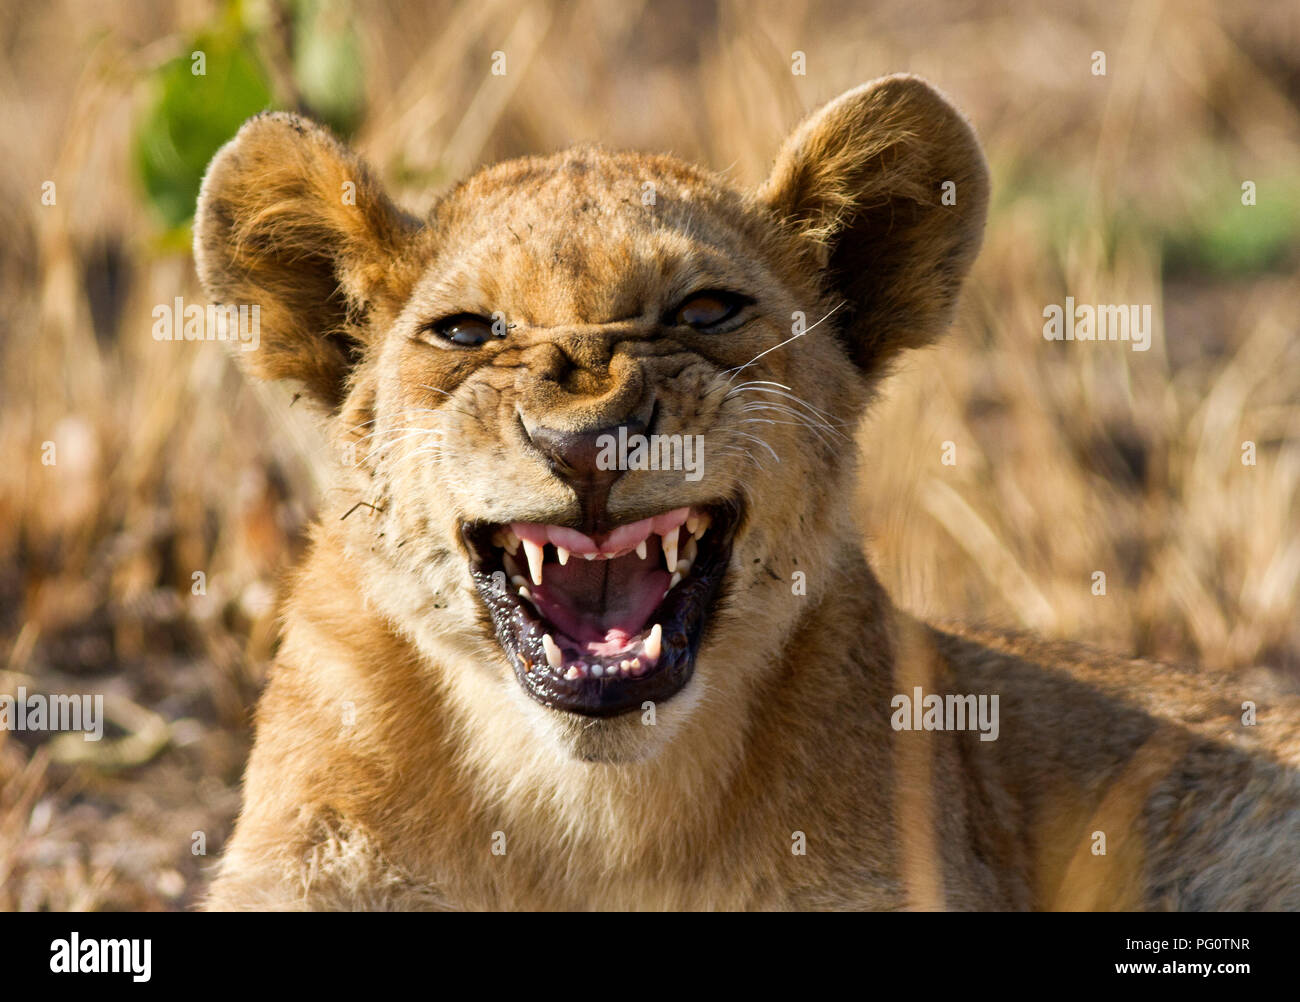 A lion cub snarls at the vehicle knowing full well he is safe in the confines of the pride who are all in close proximity. - Stock Image